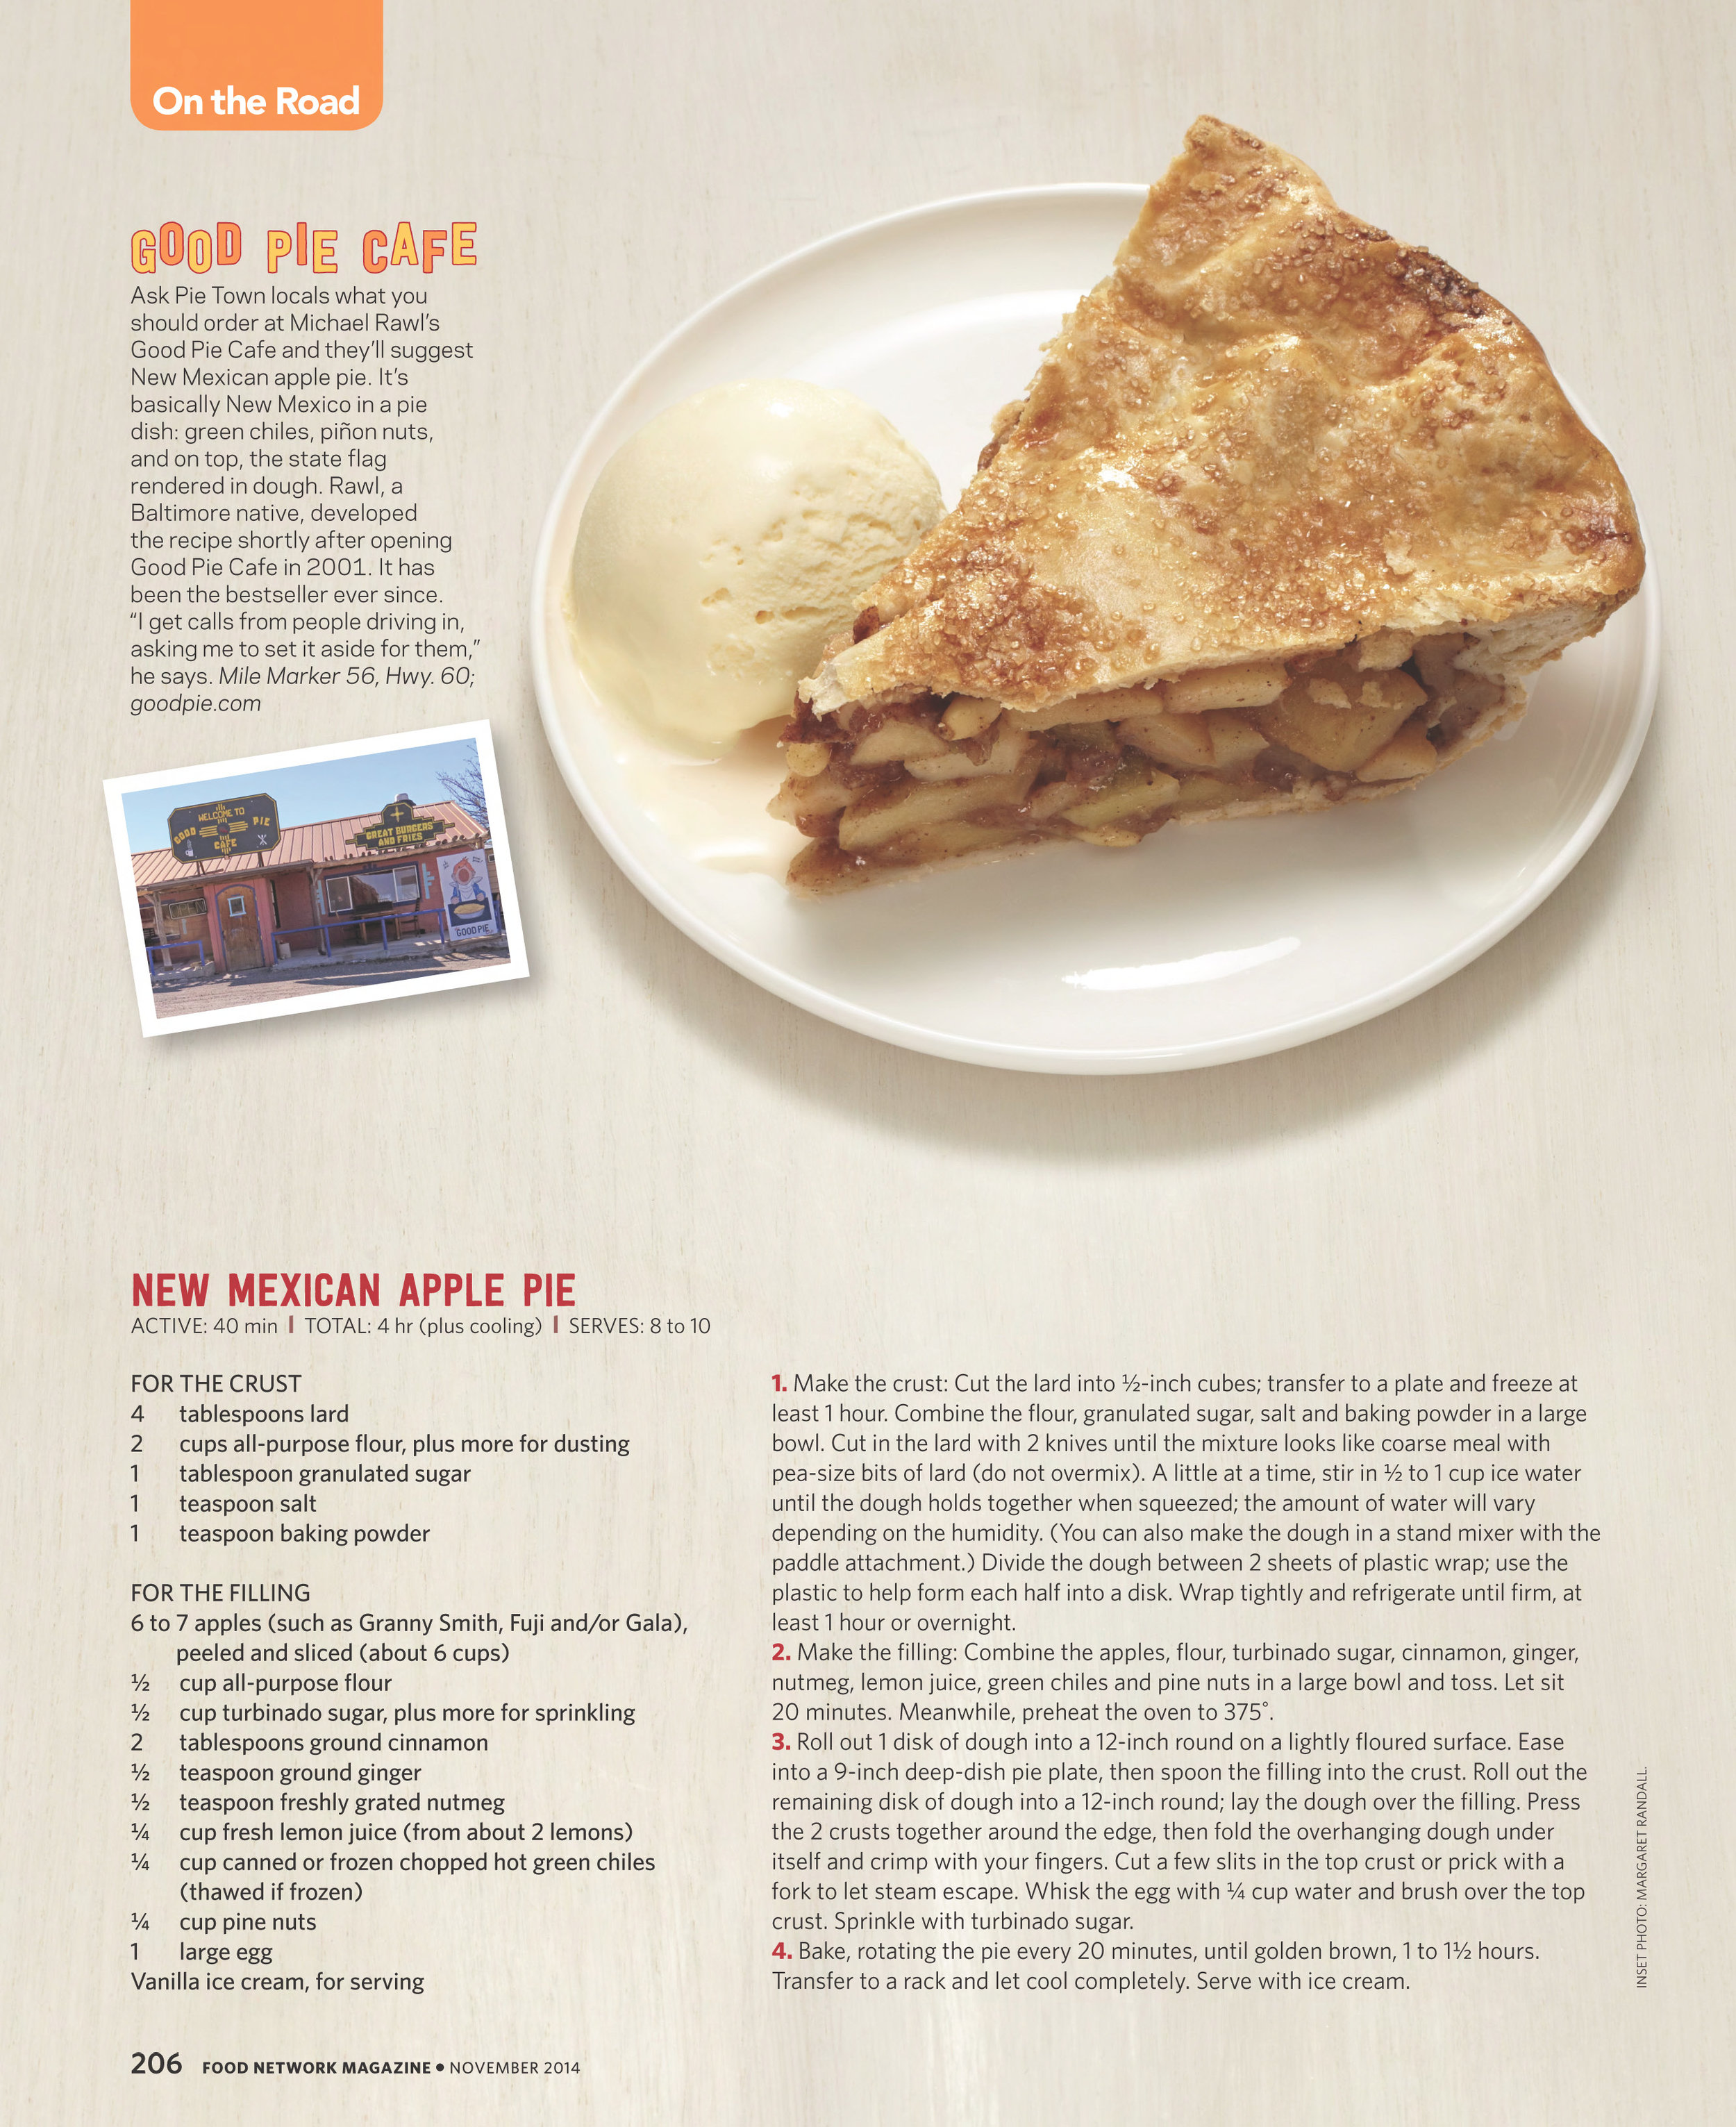 Apple Pie Photograph by Devon Jarvis for Food Network Magazine